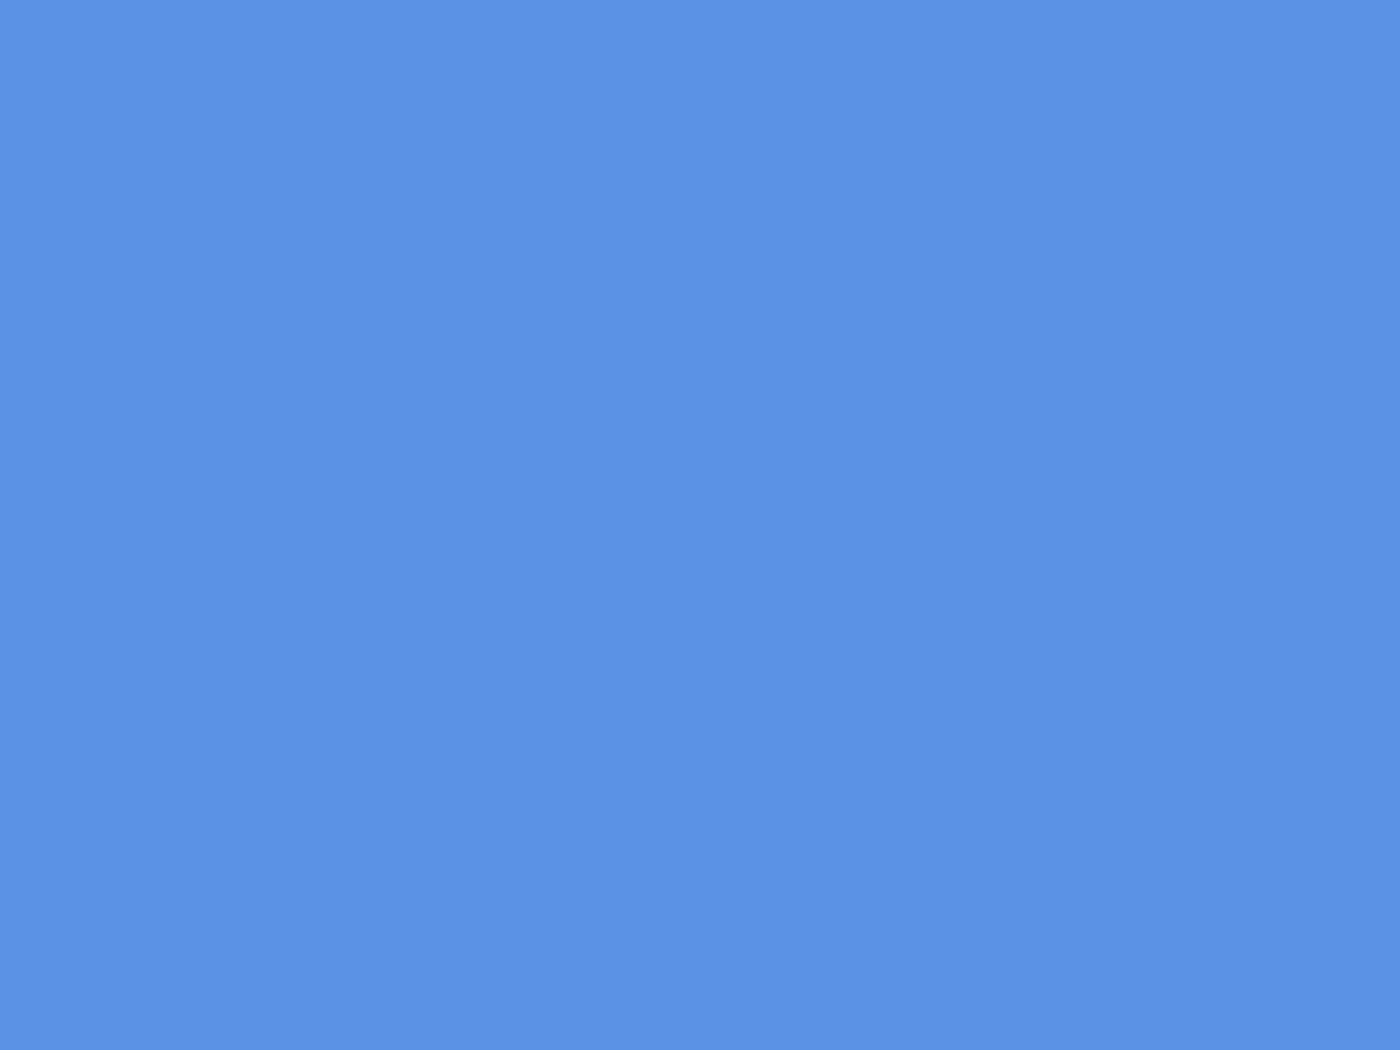 1400x1050 United Nations Blue Solid Color Background